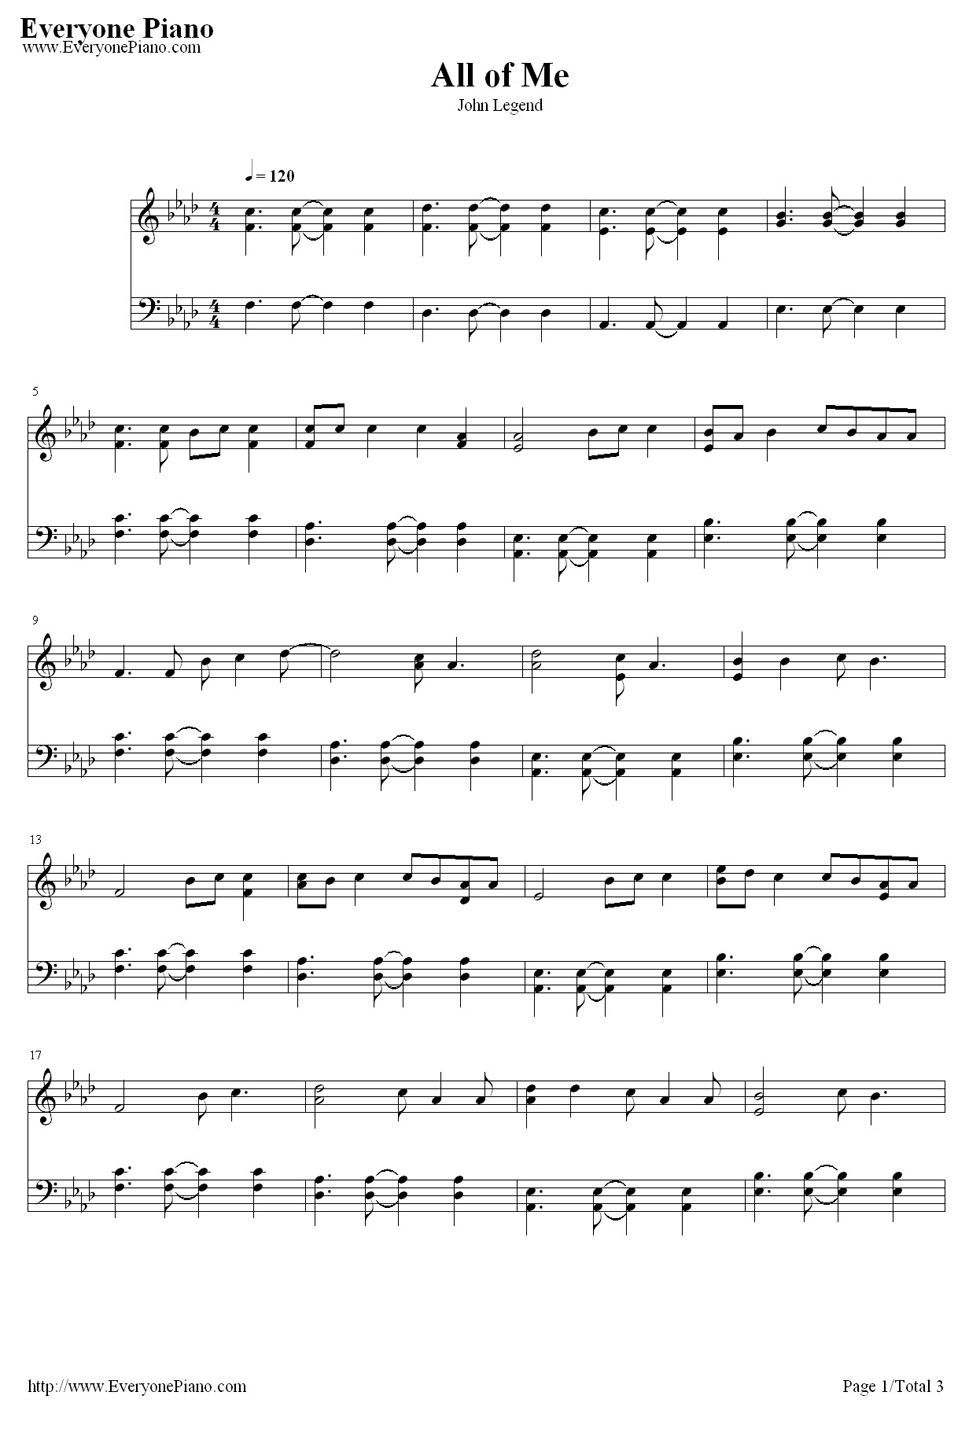 Violin Sheet Music to Download and Print [Top Quality PDFs]